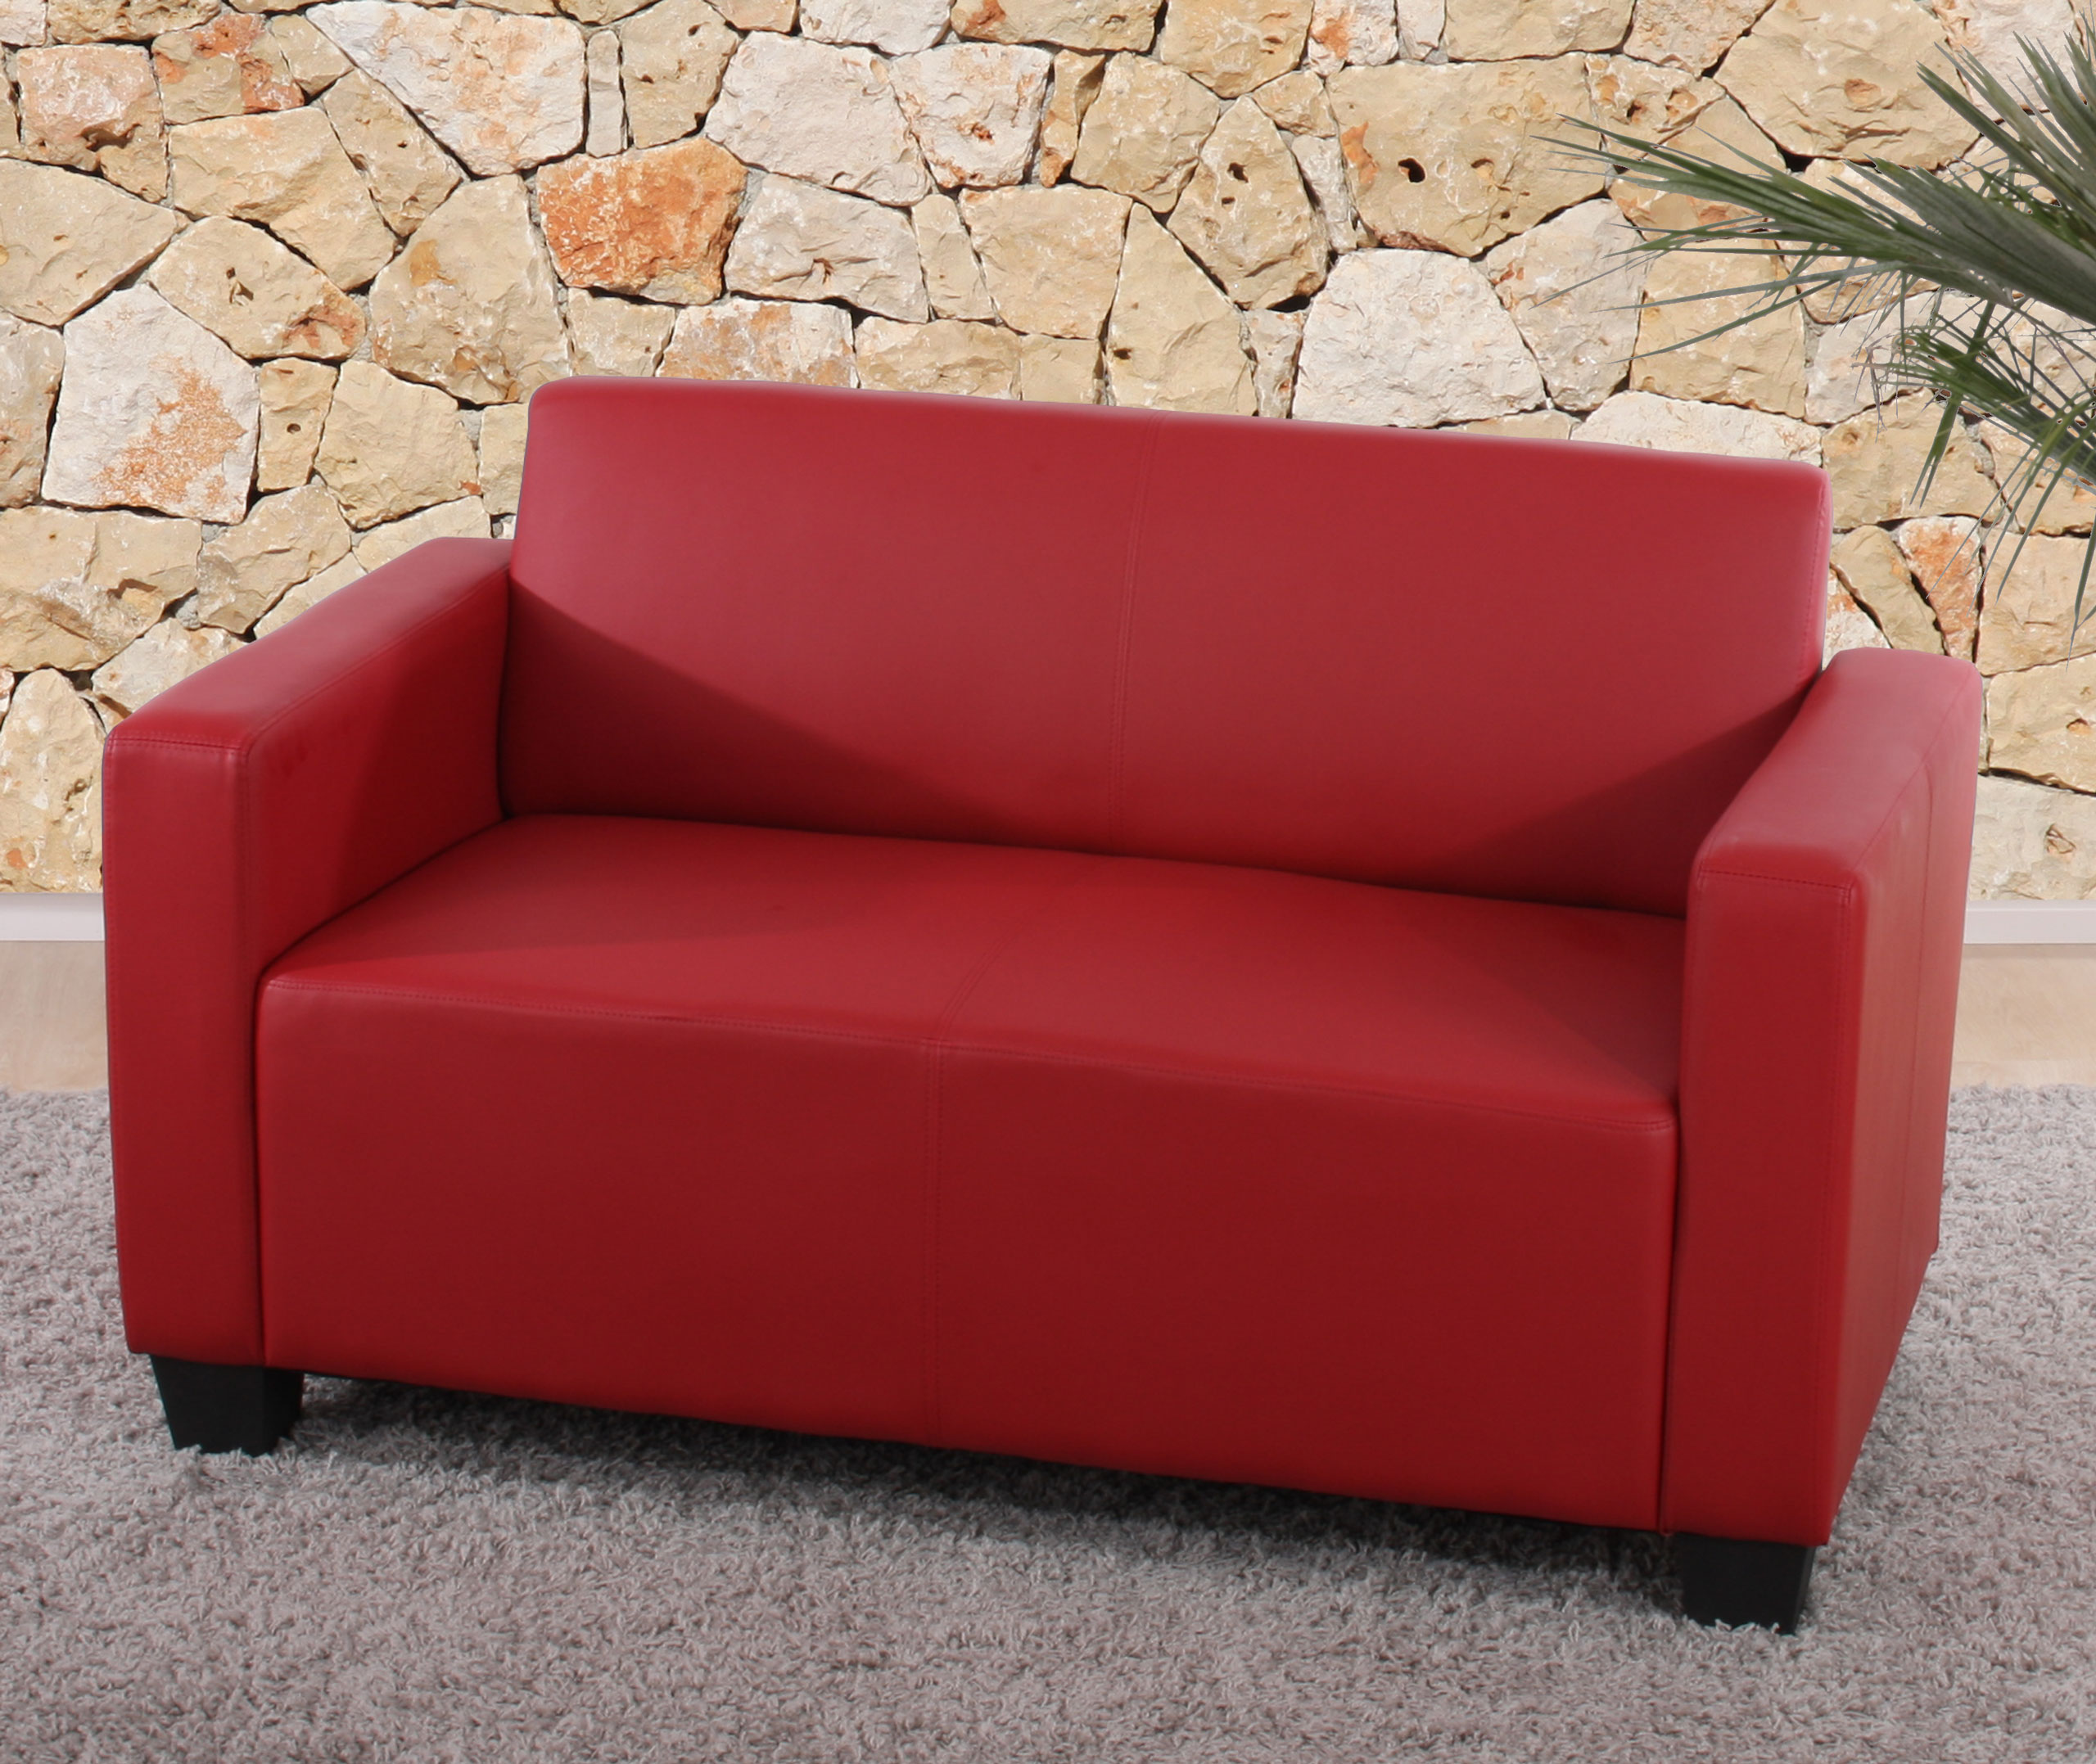 modular 2er sofa couch lyon loungesofa kunstleder rot. Black Bedroom Furniture Sets. Home Design Ideas